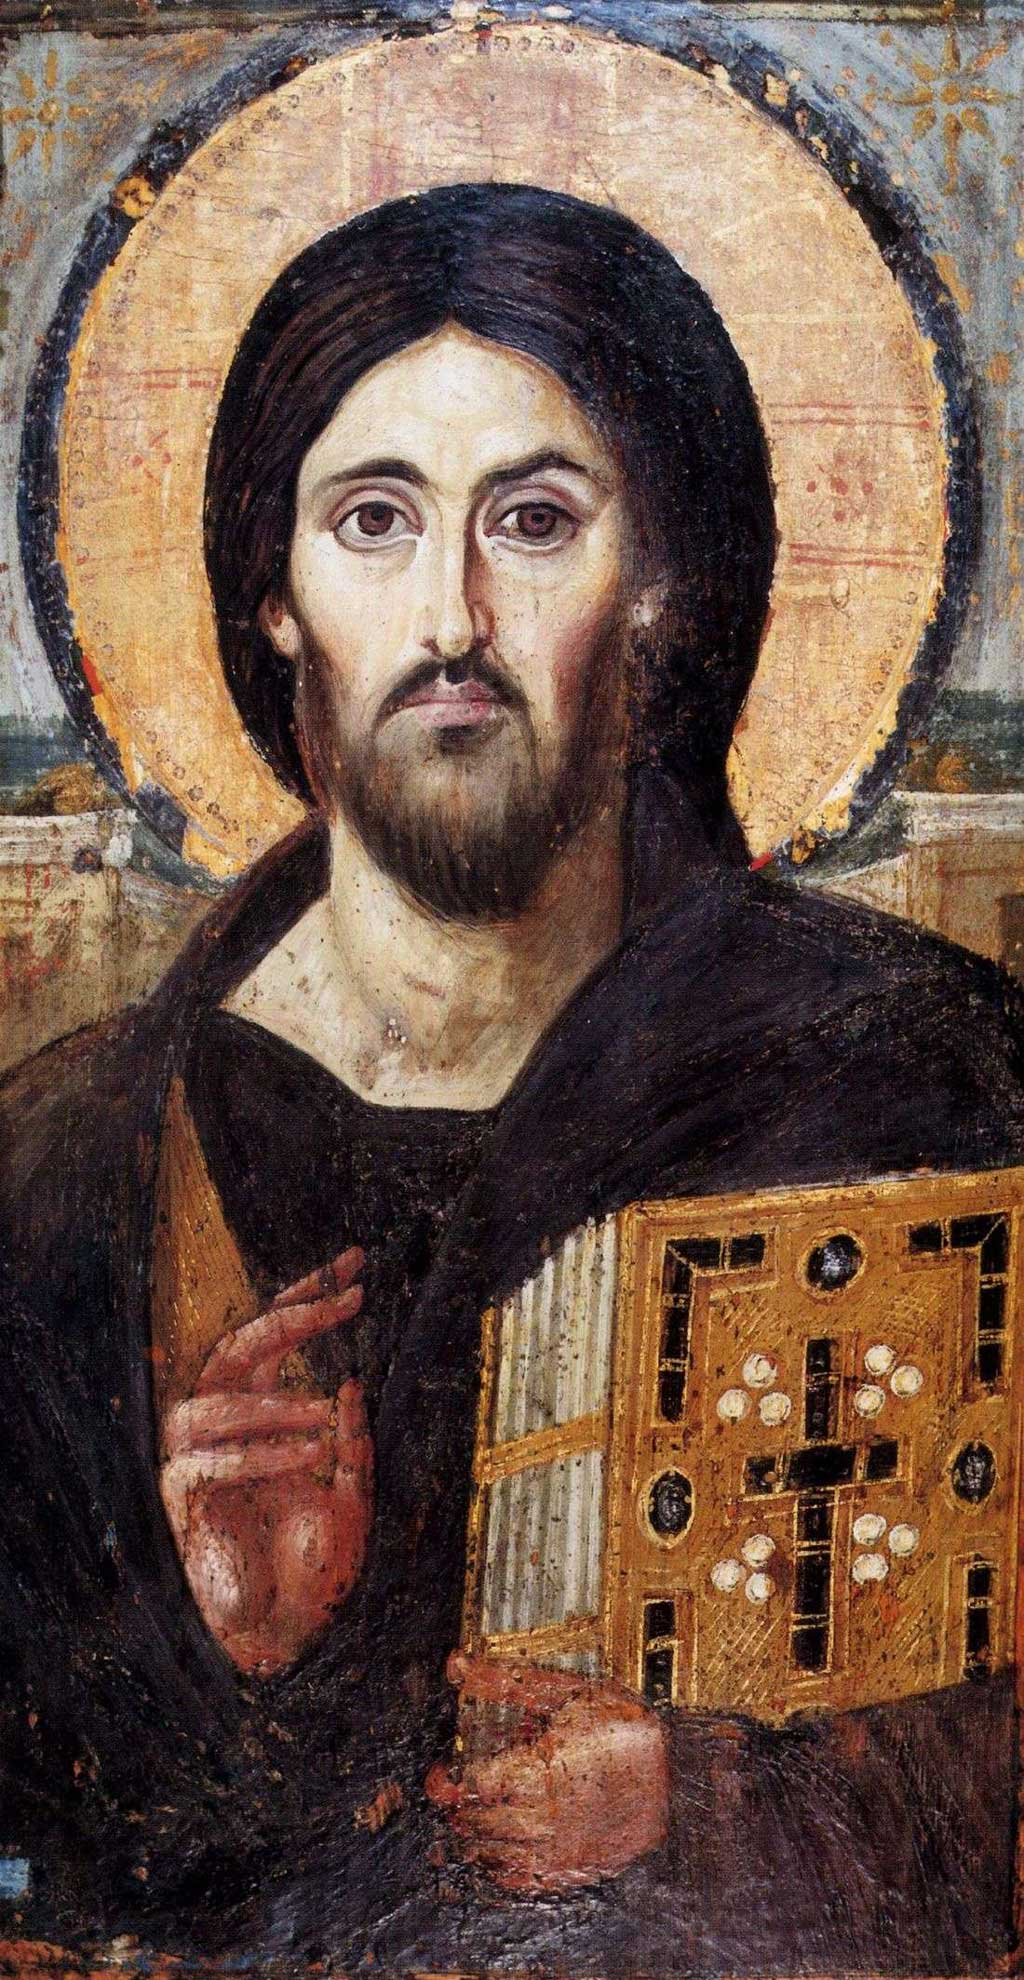 The oldest known icon depicting Jesus Christ (6th century) in Saint Catherine's Monastery, Egypt. In this image, Jesus grasps a New Testament in his left arm while making a symbol for peace with two right fingers. Also notable here is that Jesus eyes are of different color, with his brown iris dominating far more of his left eye than his right eye.